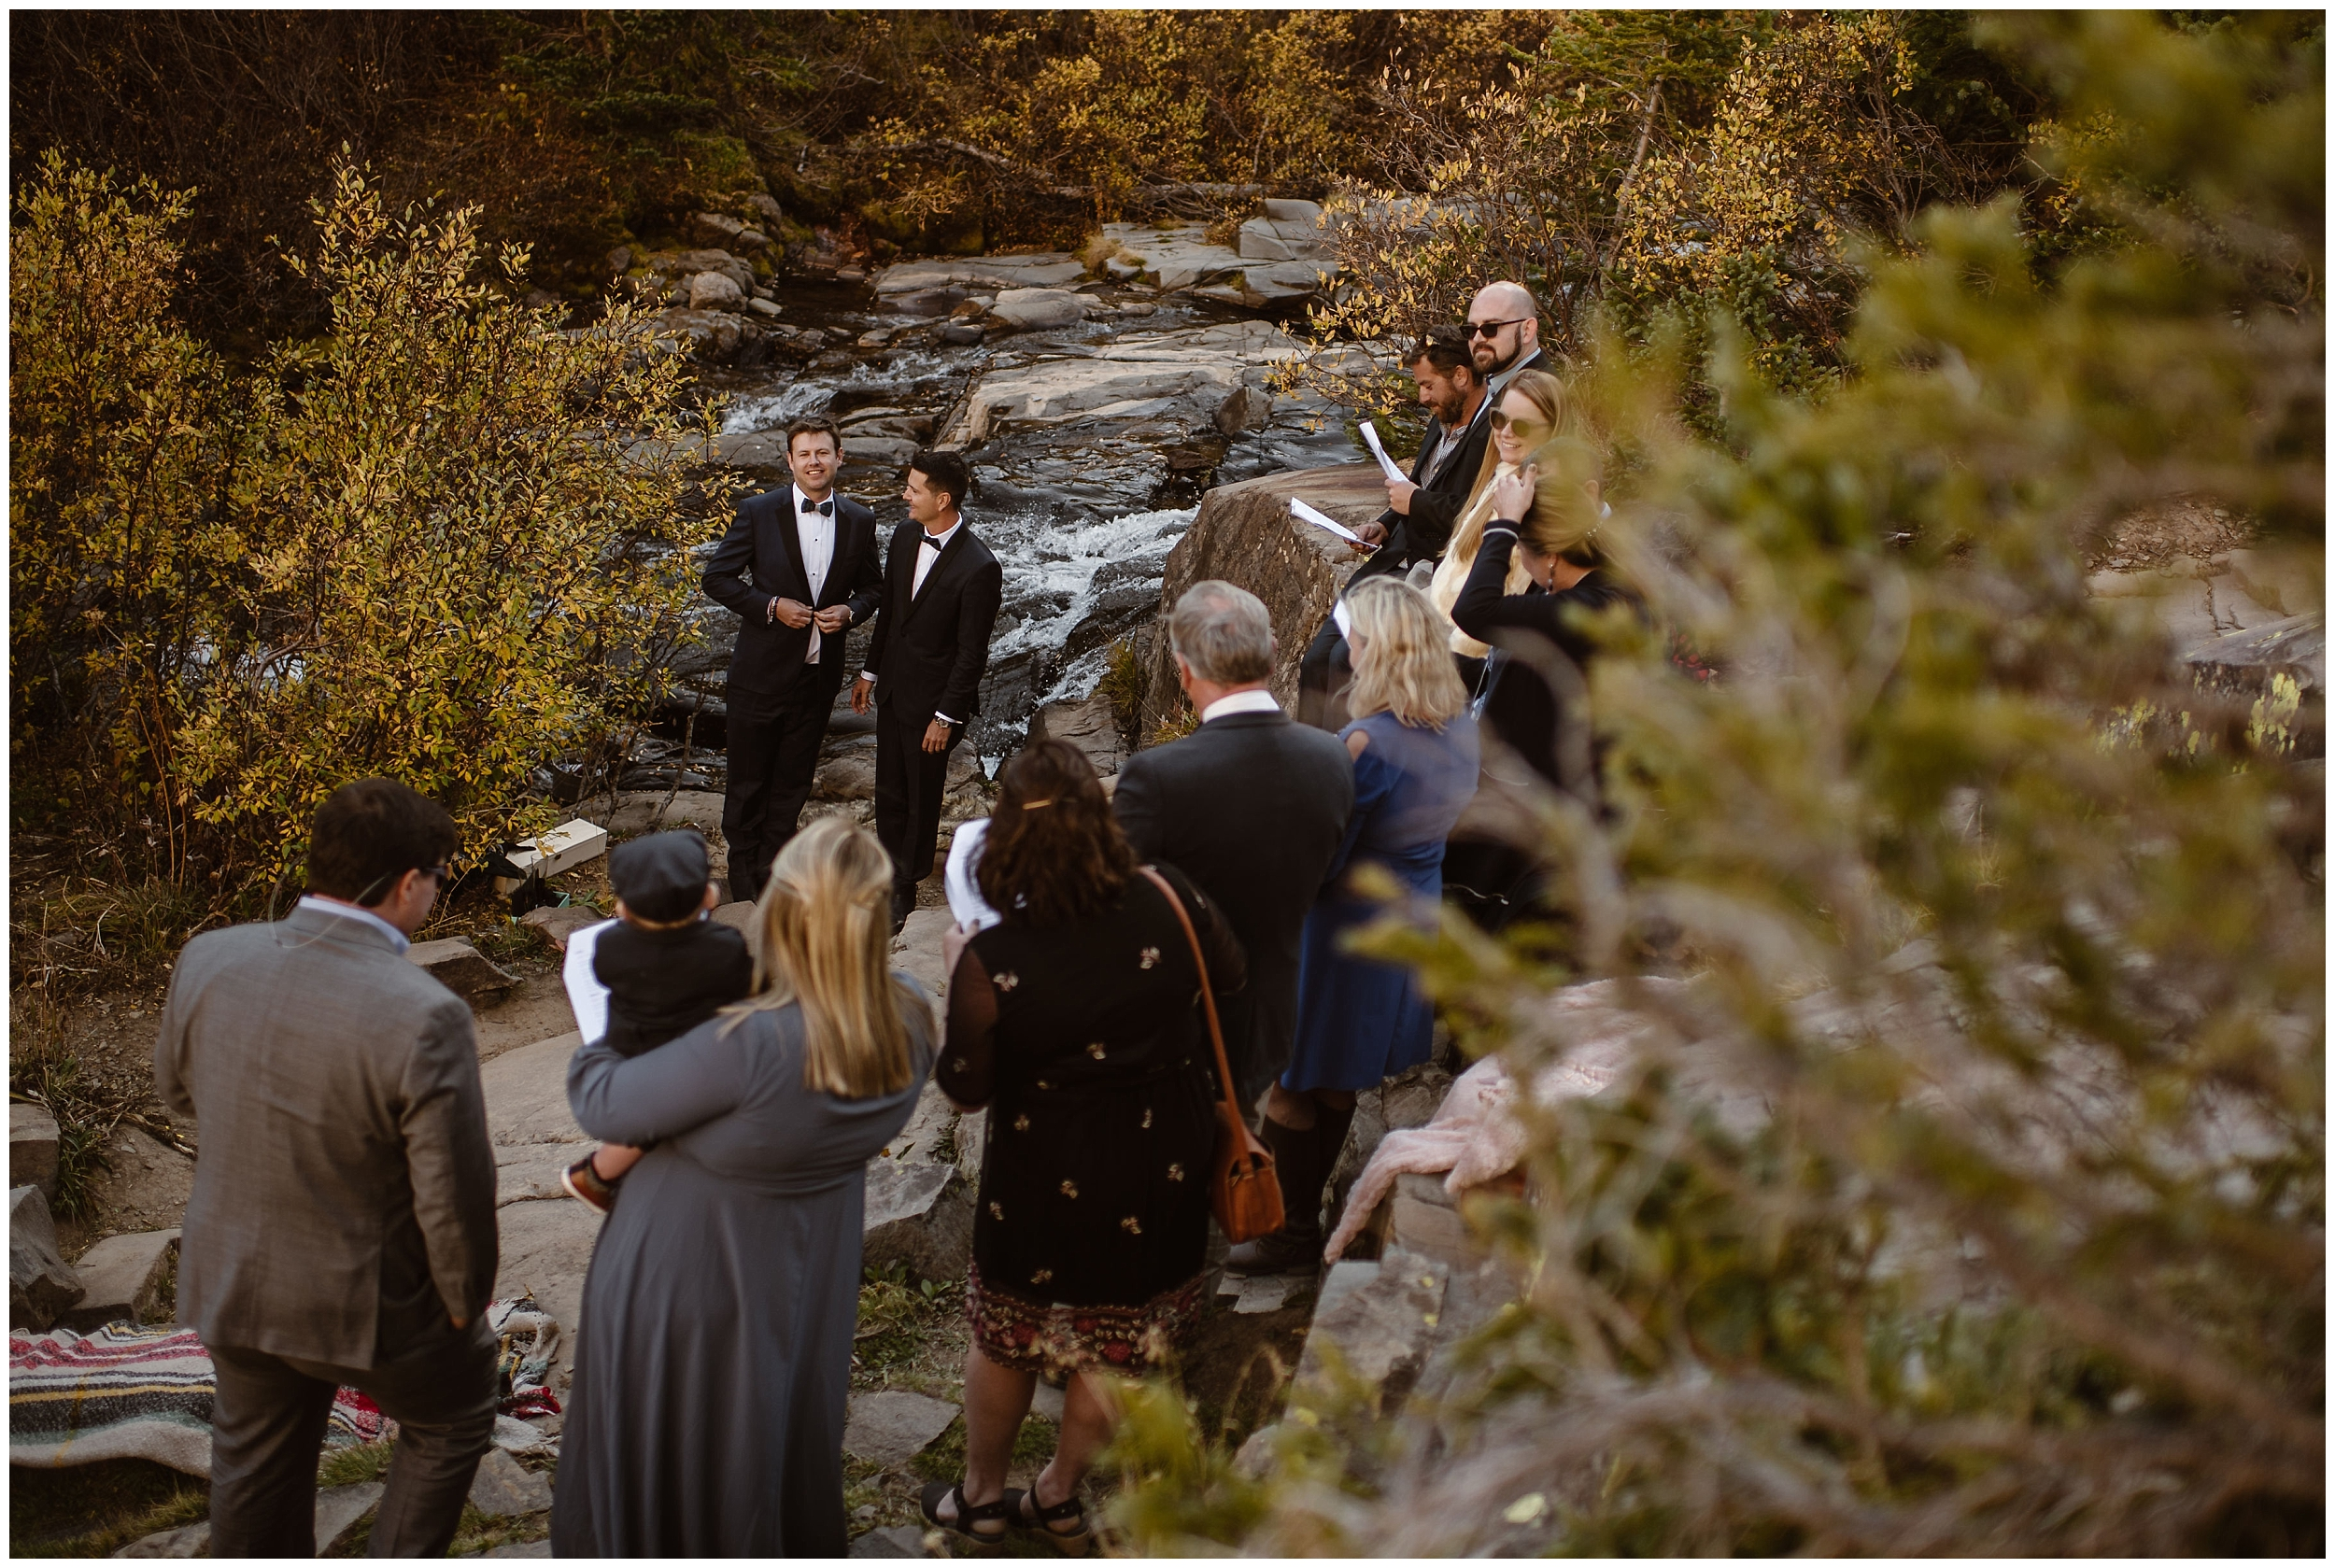 Brian and Ernie stand next to a rushing river during their elopement ceremony as their immediate family gathers around them for their Colorado mountain wedding. Everyone is holding a special document with detailed blurbs for their parts of their ceremony.